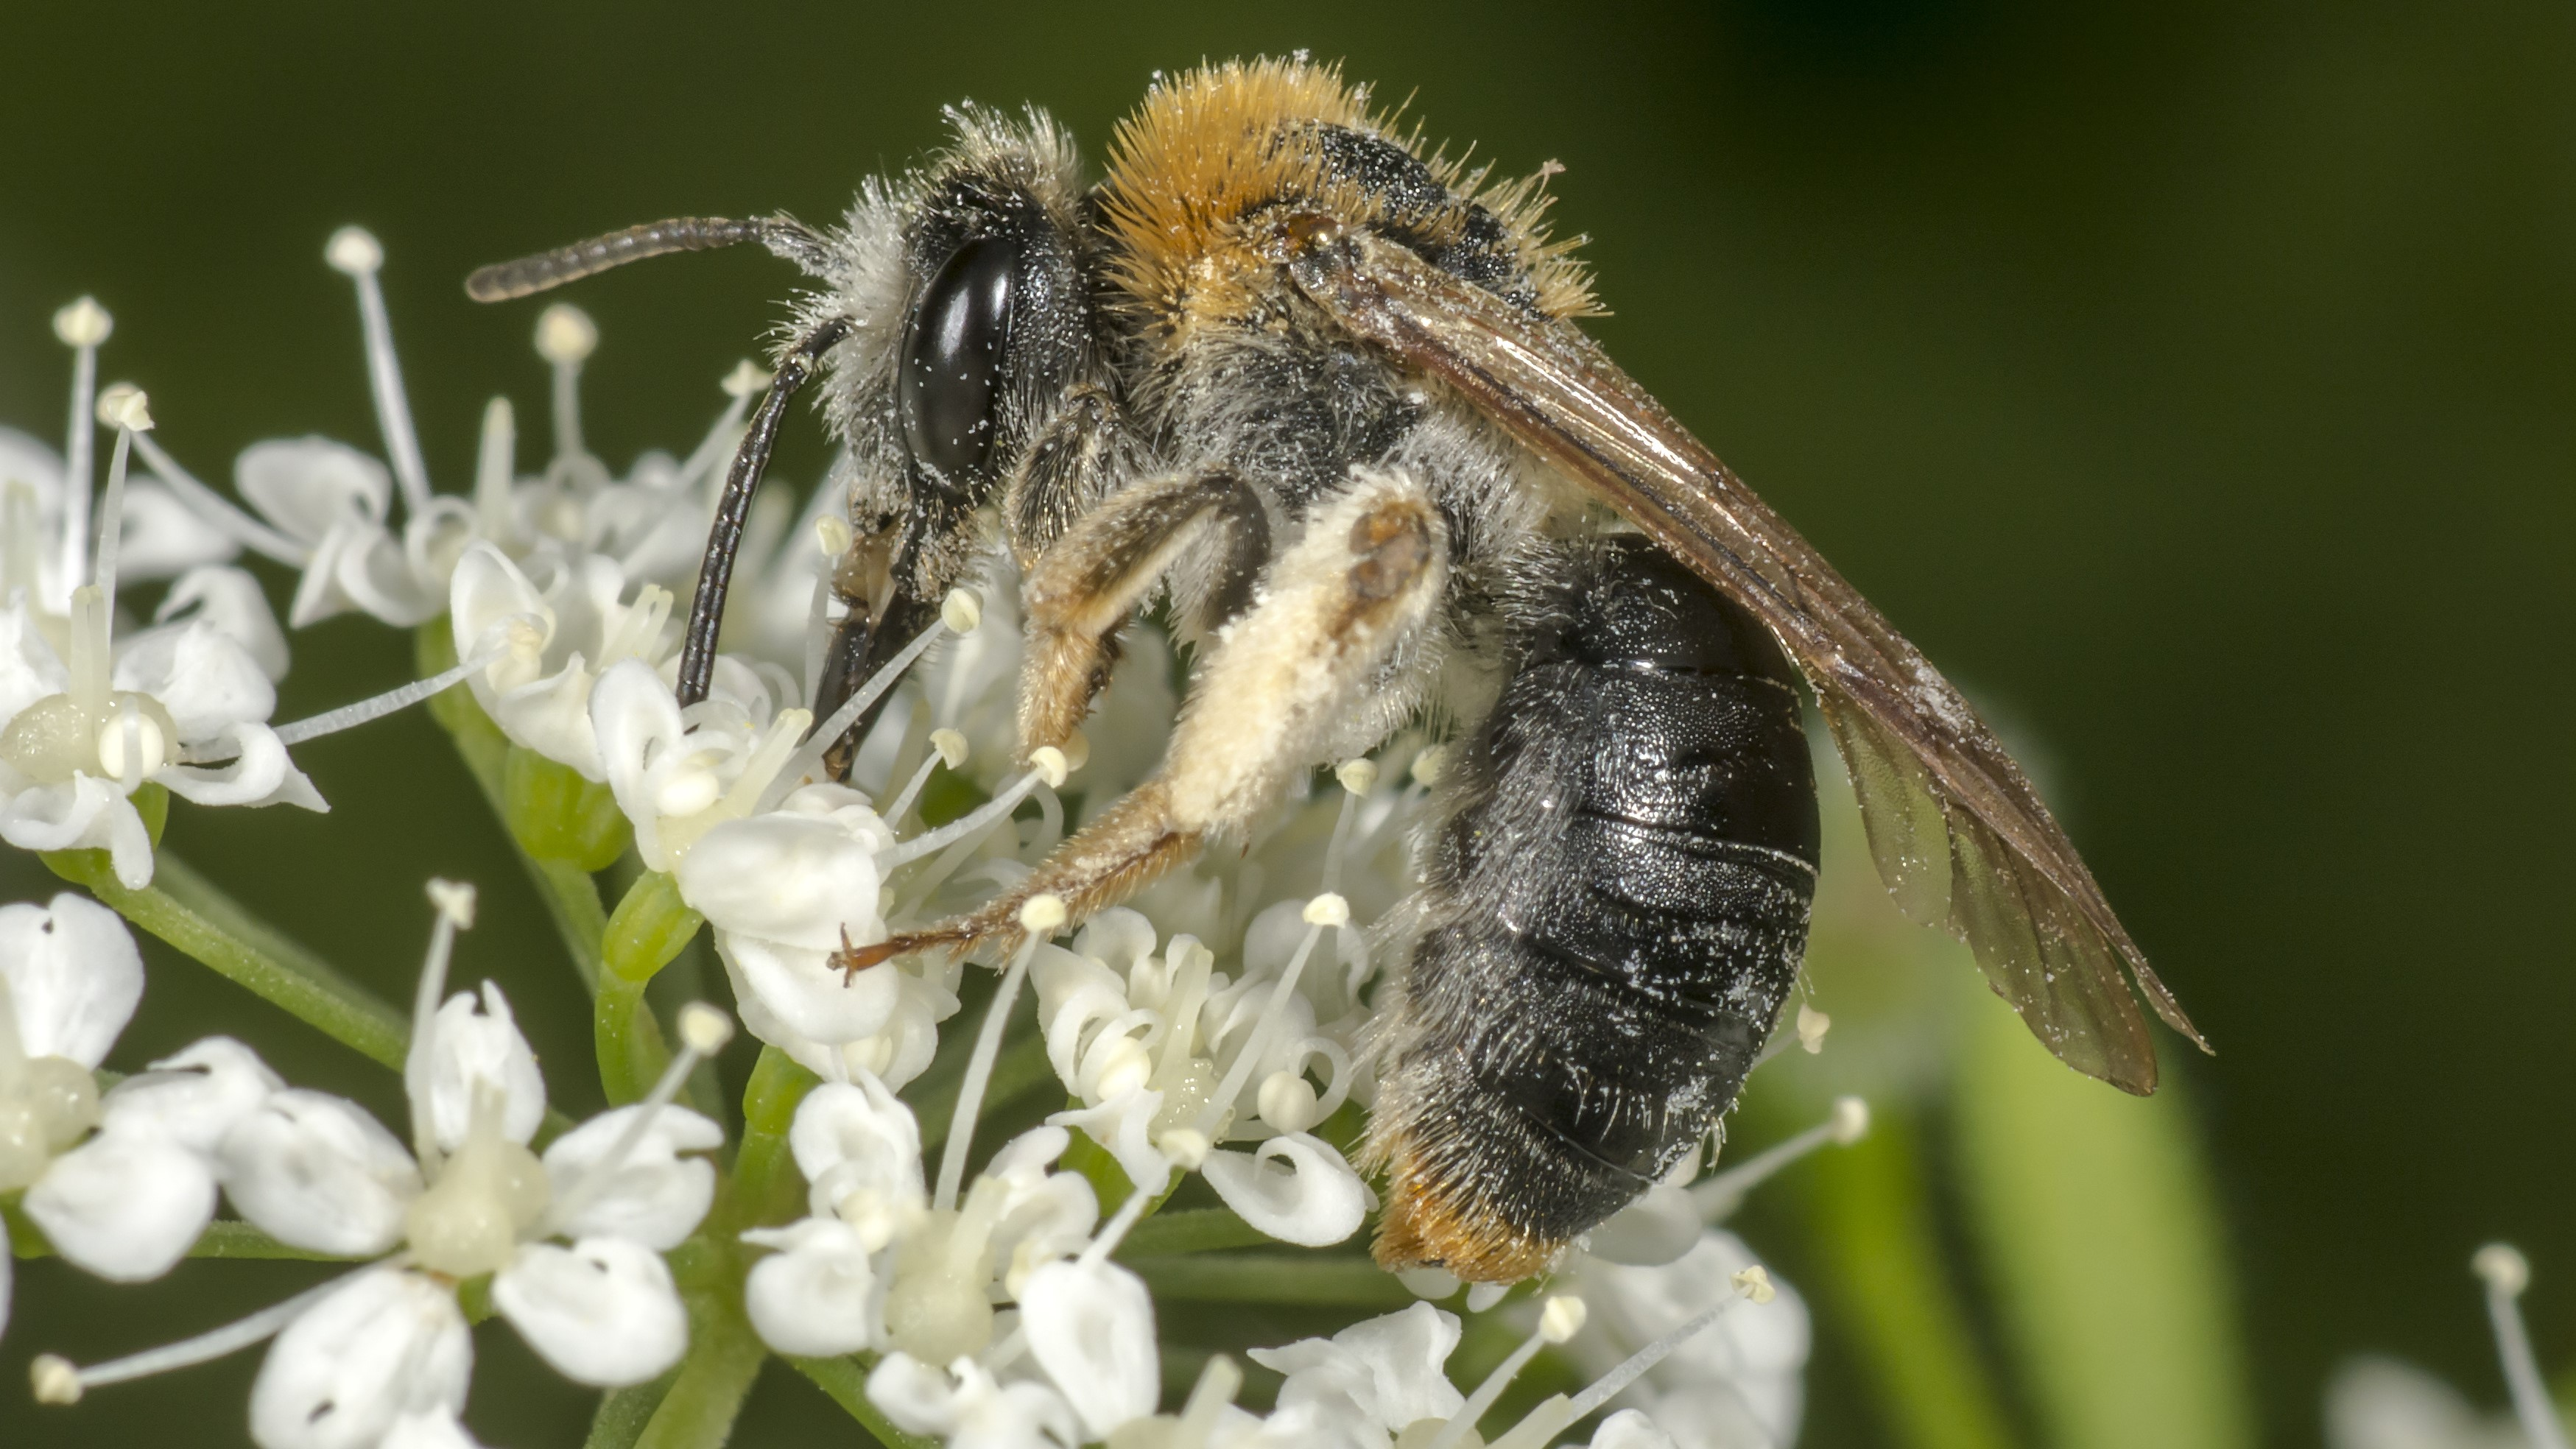 Attract Bees - Attract mining bees - Early Mining Bee